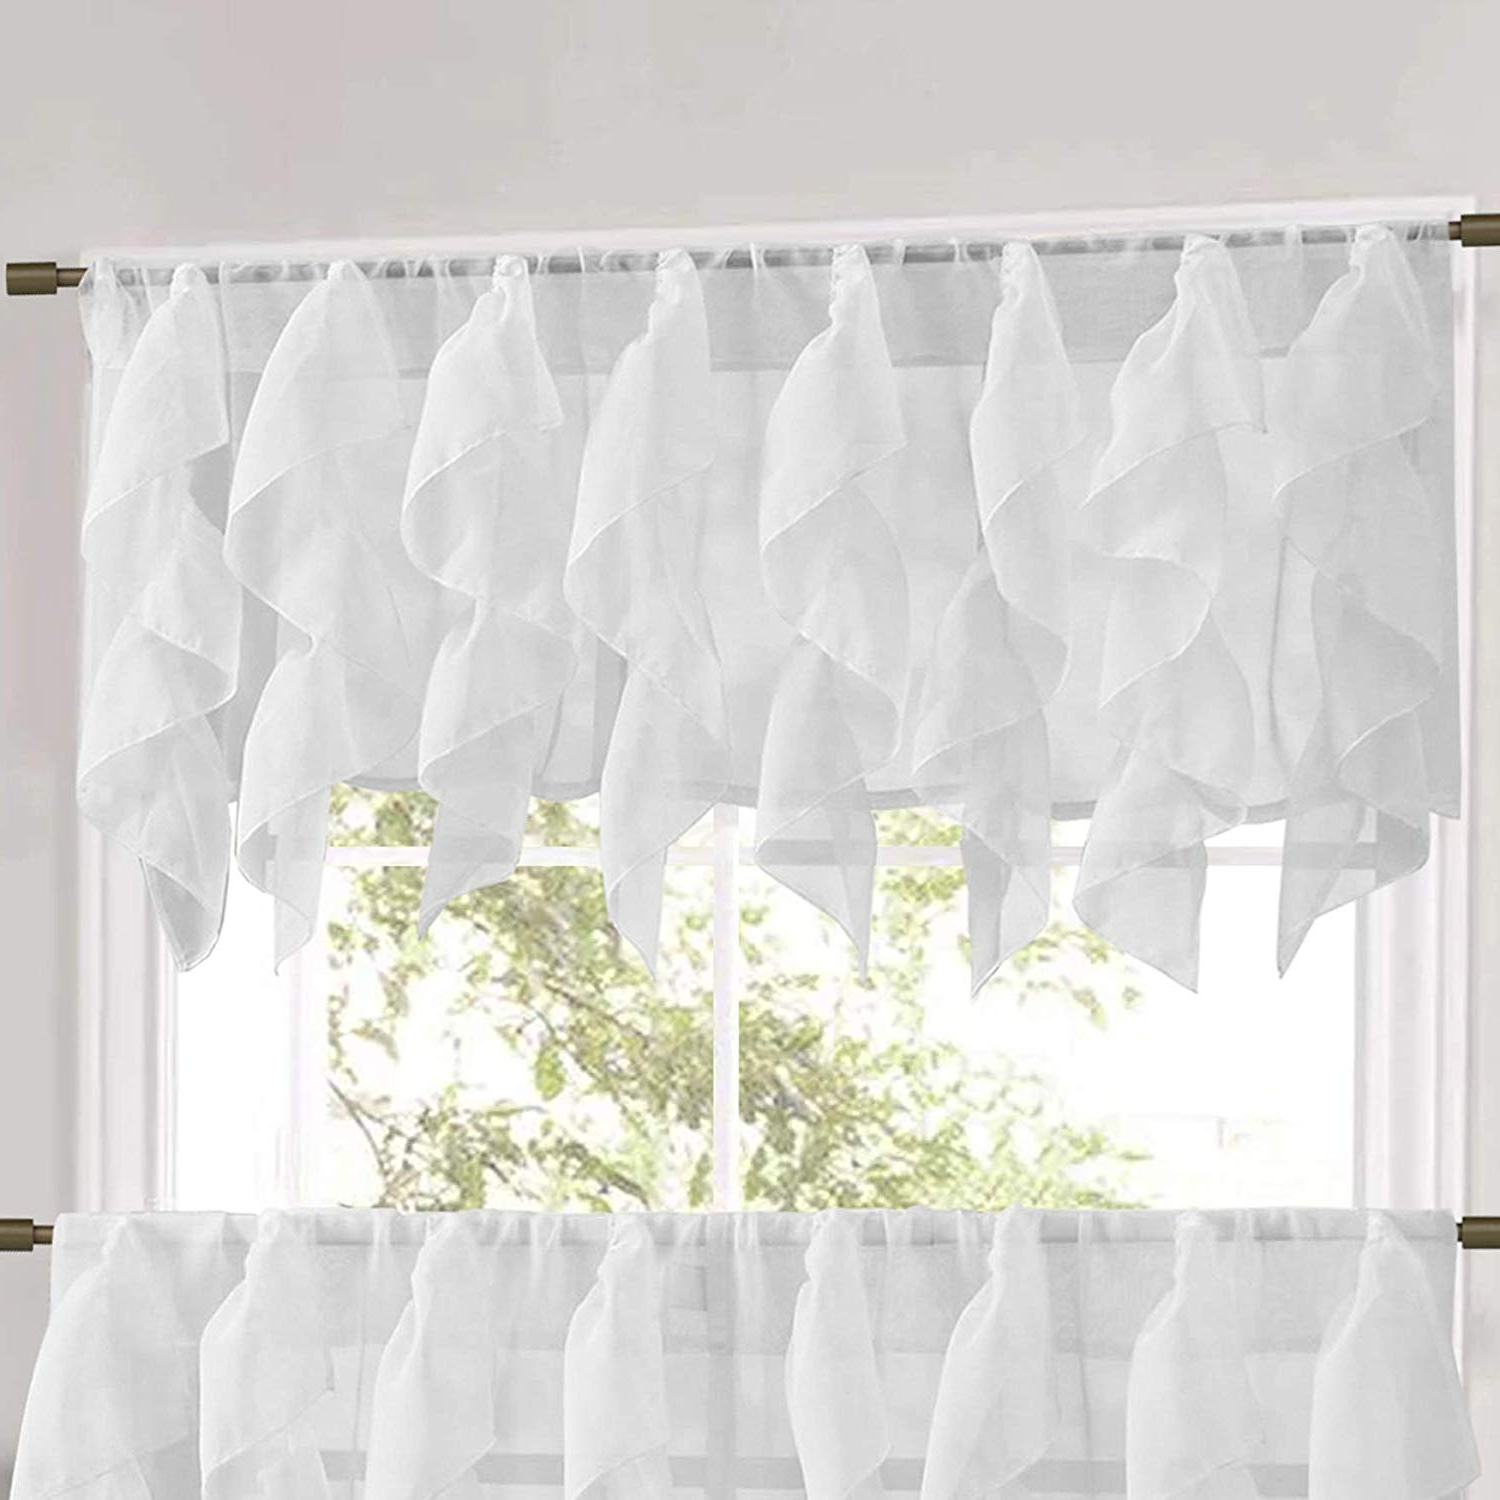 "Silver Vertical Ruffled Waterfall Valance And Curtain Tiers Regarding Most Popular Sweet Home Collection Veritcal Kitchen Curtain Sheer Cascading Ruffle Waterfall Window Treatment Choice Of Valance, 24"" Or 36"" Teir, And Kit, White (View 13 of 20)"